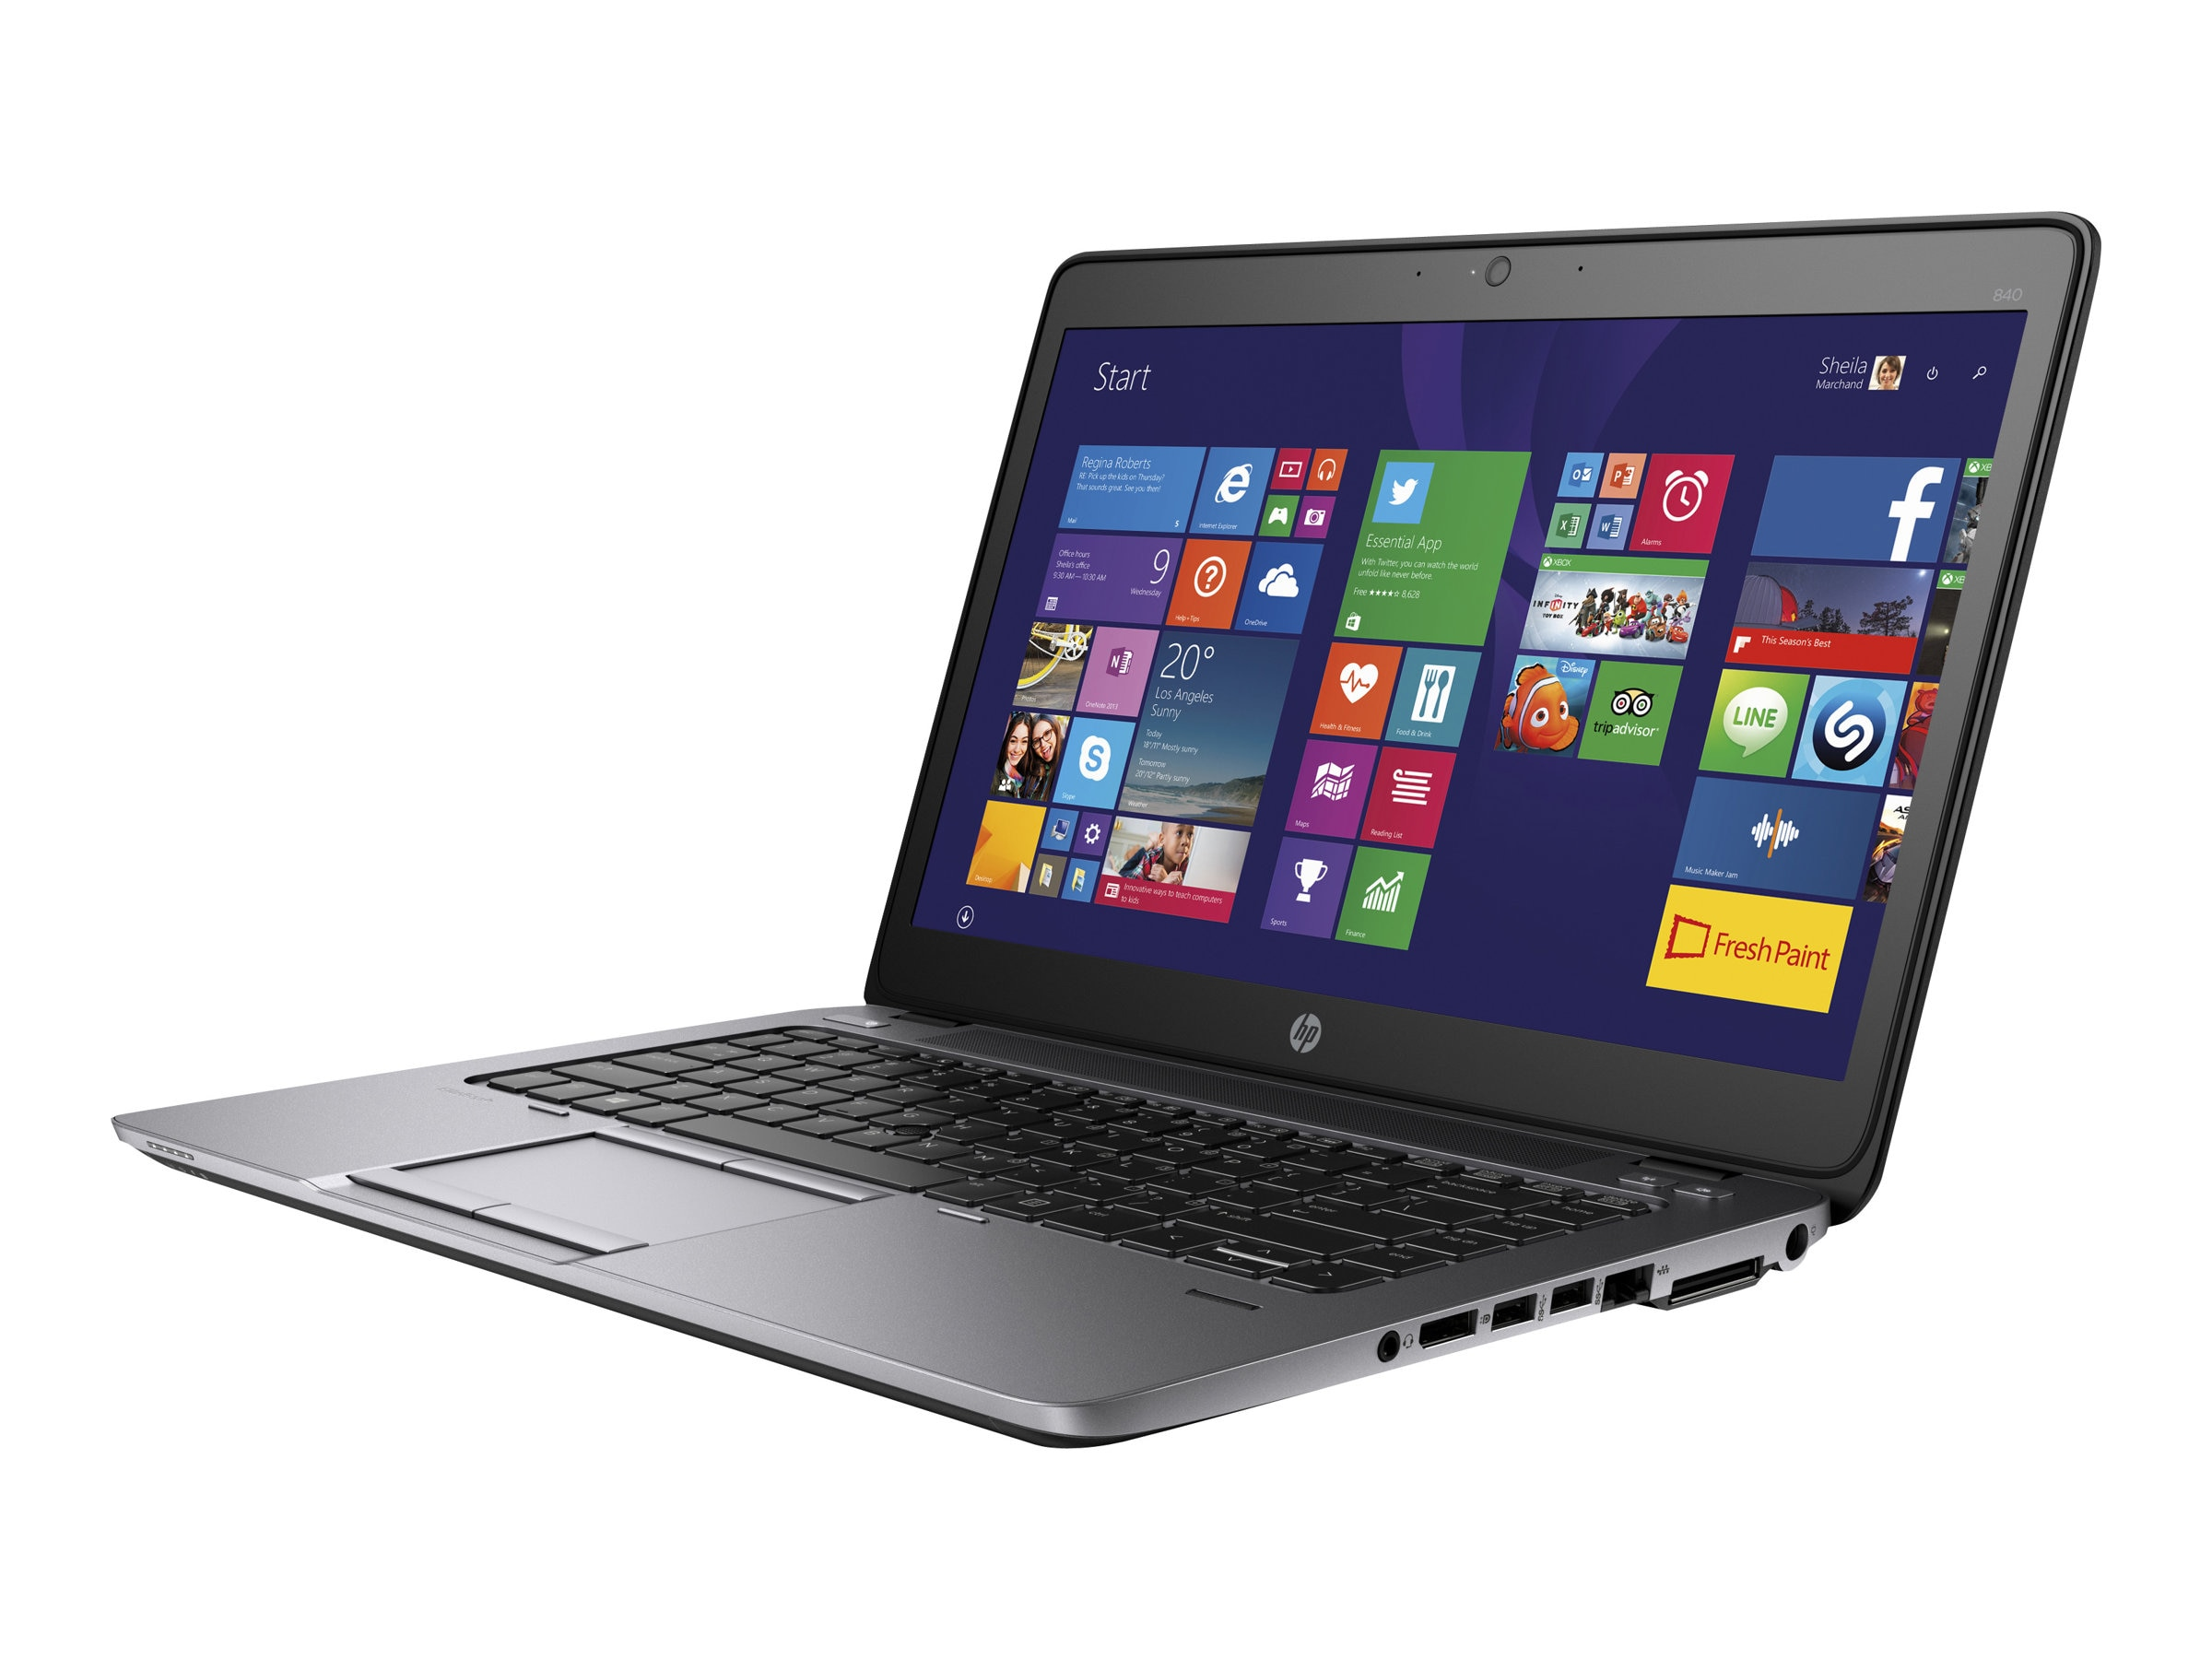 HP Smart Buy EliteBook 840 G2 2.6GHz Core i7 14in display, P0C60UT#ABA, 25234567, Notebooks